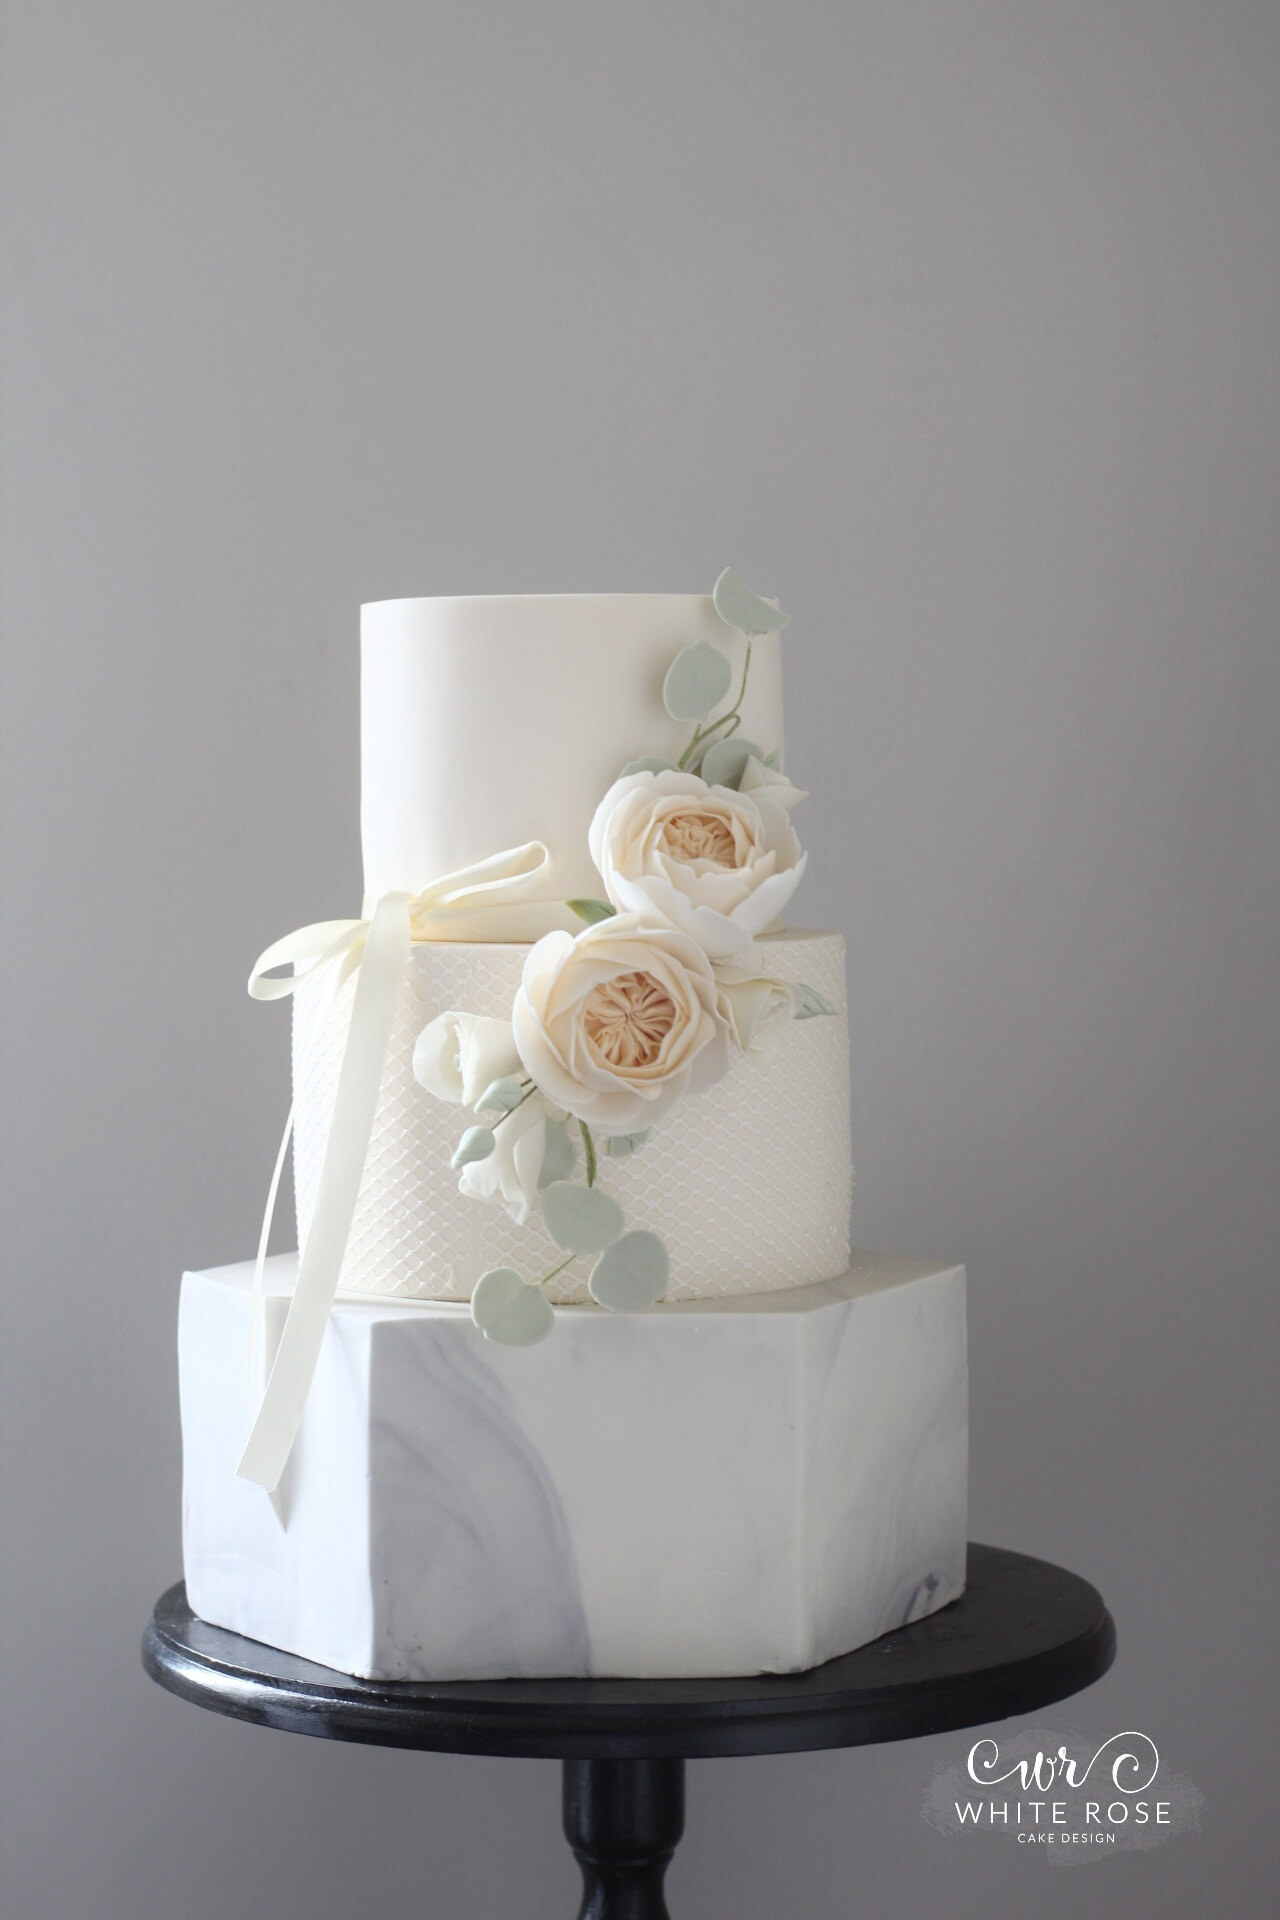 Peach roses and marble hexagon tier wedding cake by White Rose Cake Design Cake maker in Yorkshire